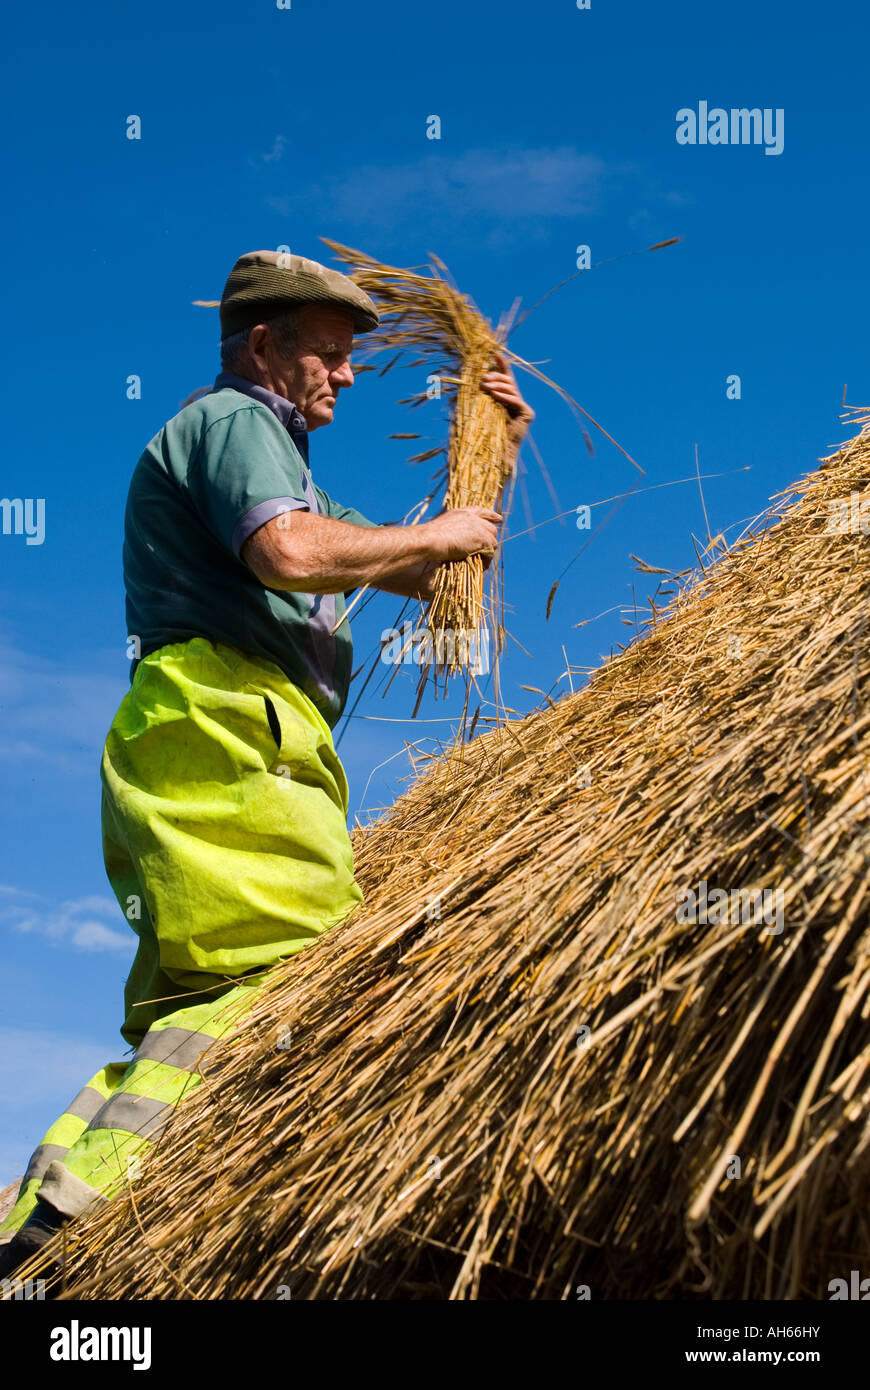 September 2007 Ardara County Donegal Ireland Peter McGuire at work thatching a cottage Photo by Richard Wayman - Stock Image